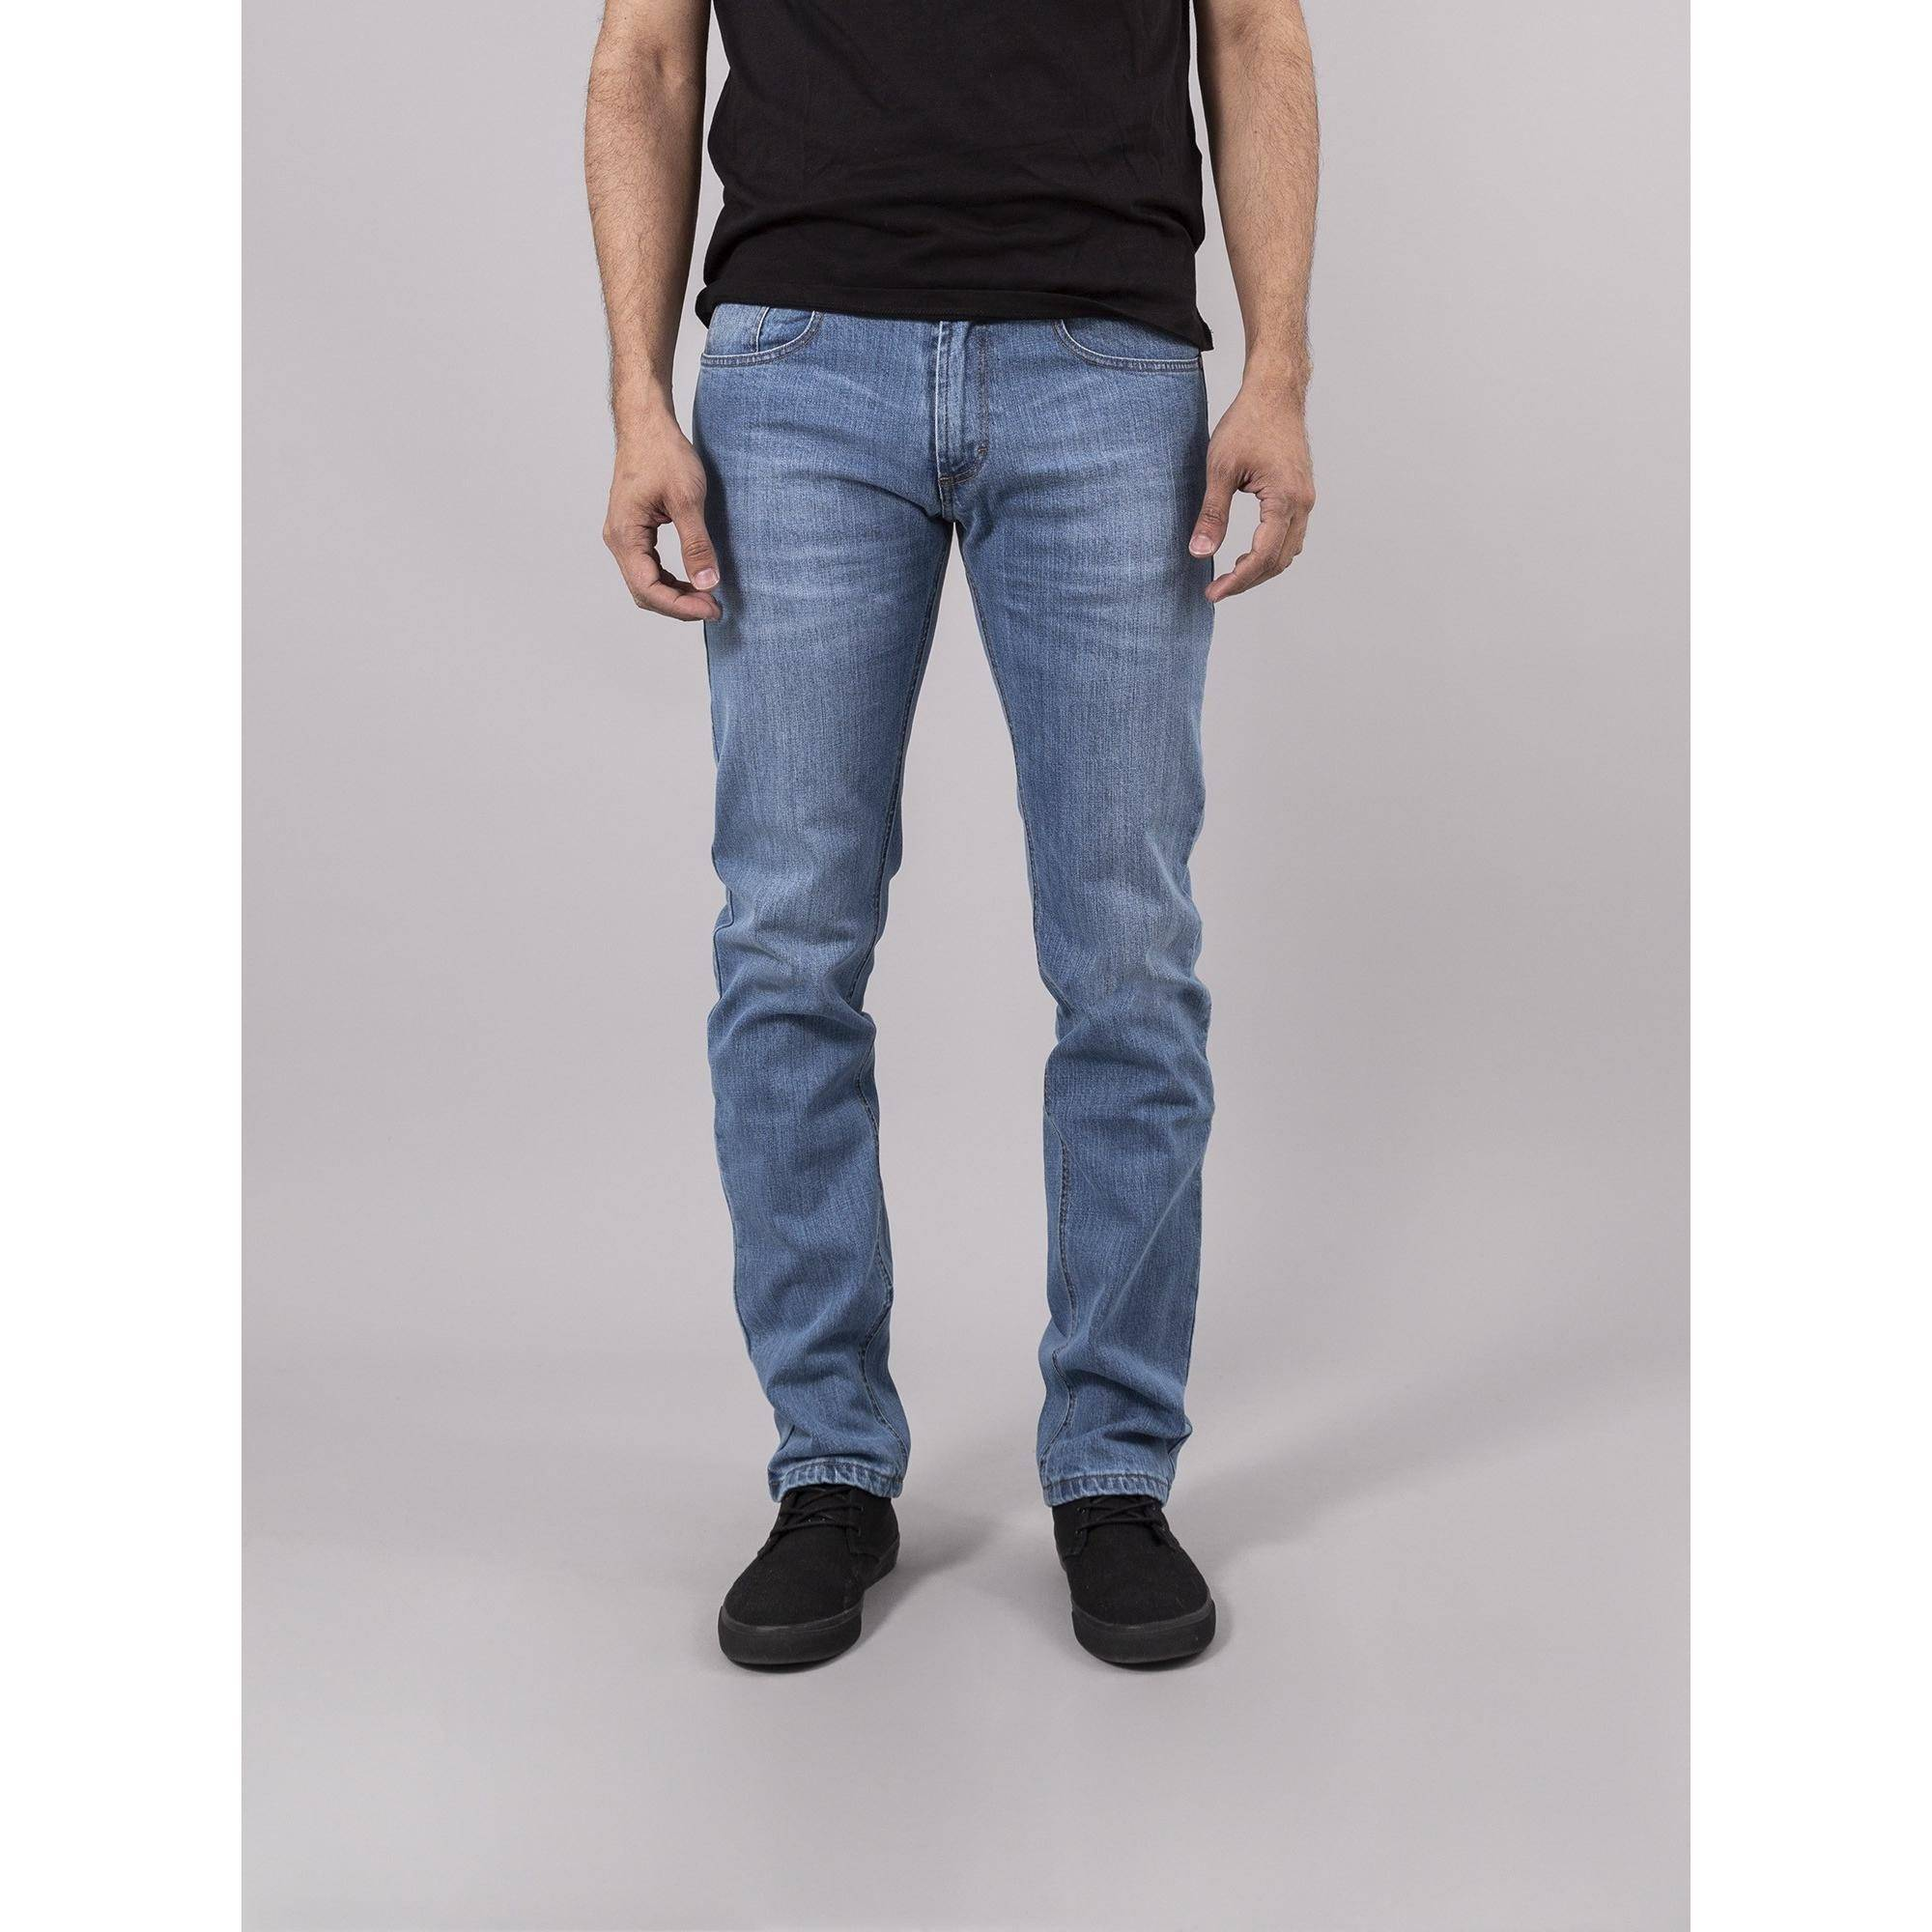 Capitán Denim Pantalones Ray Sunny Blue WATERLESS Capitán Denim 54